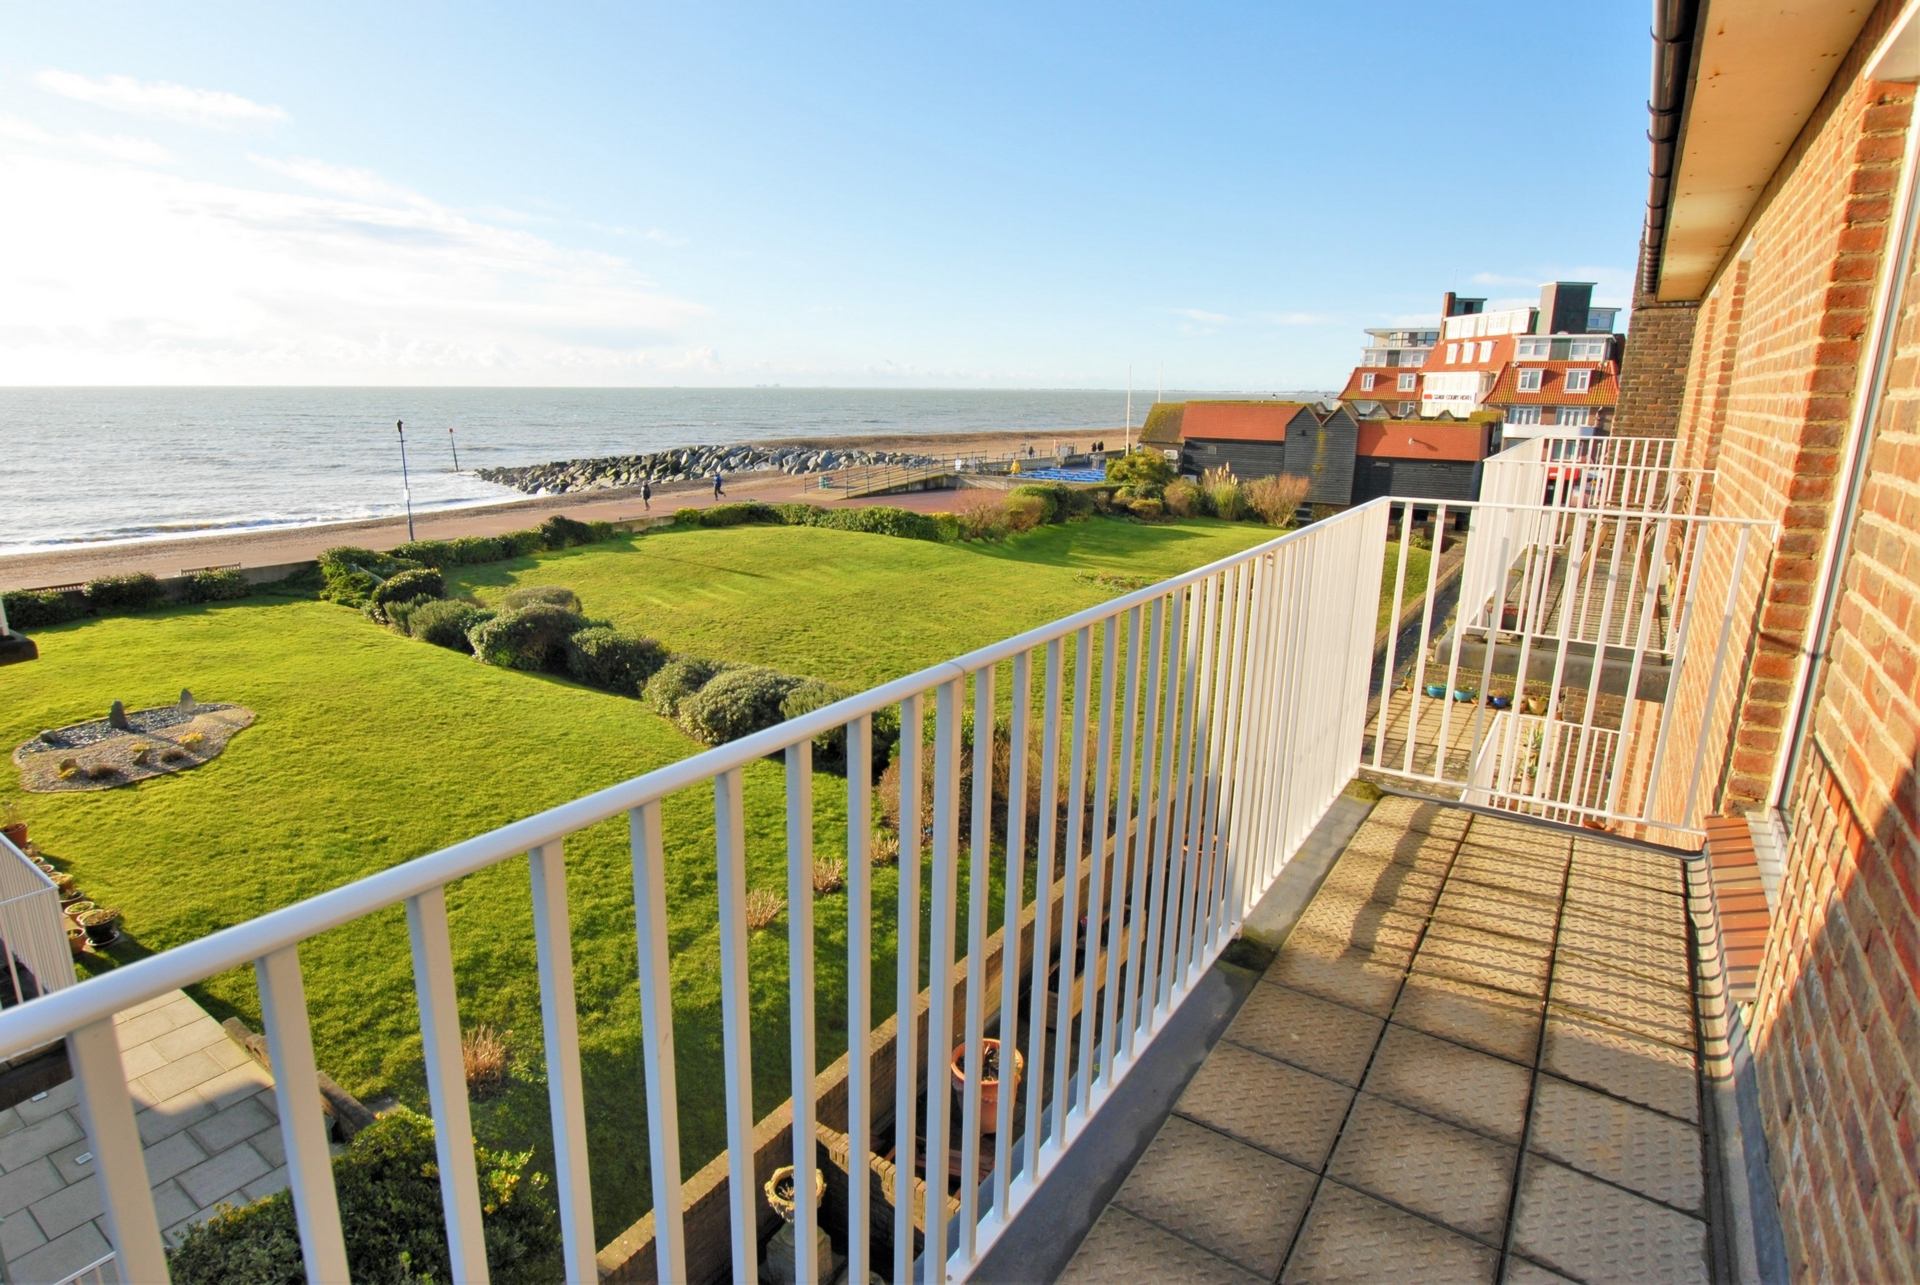 Balcony, South Road, Hythe, CT21